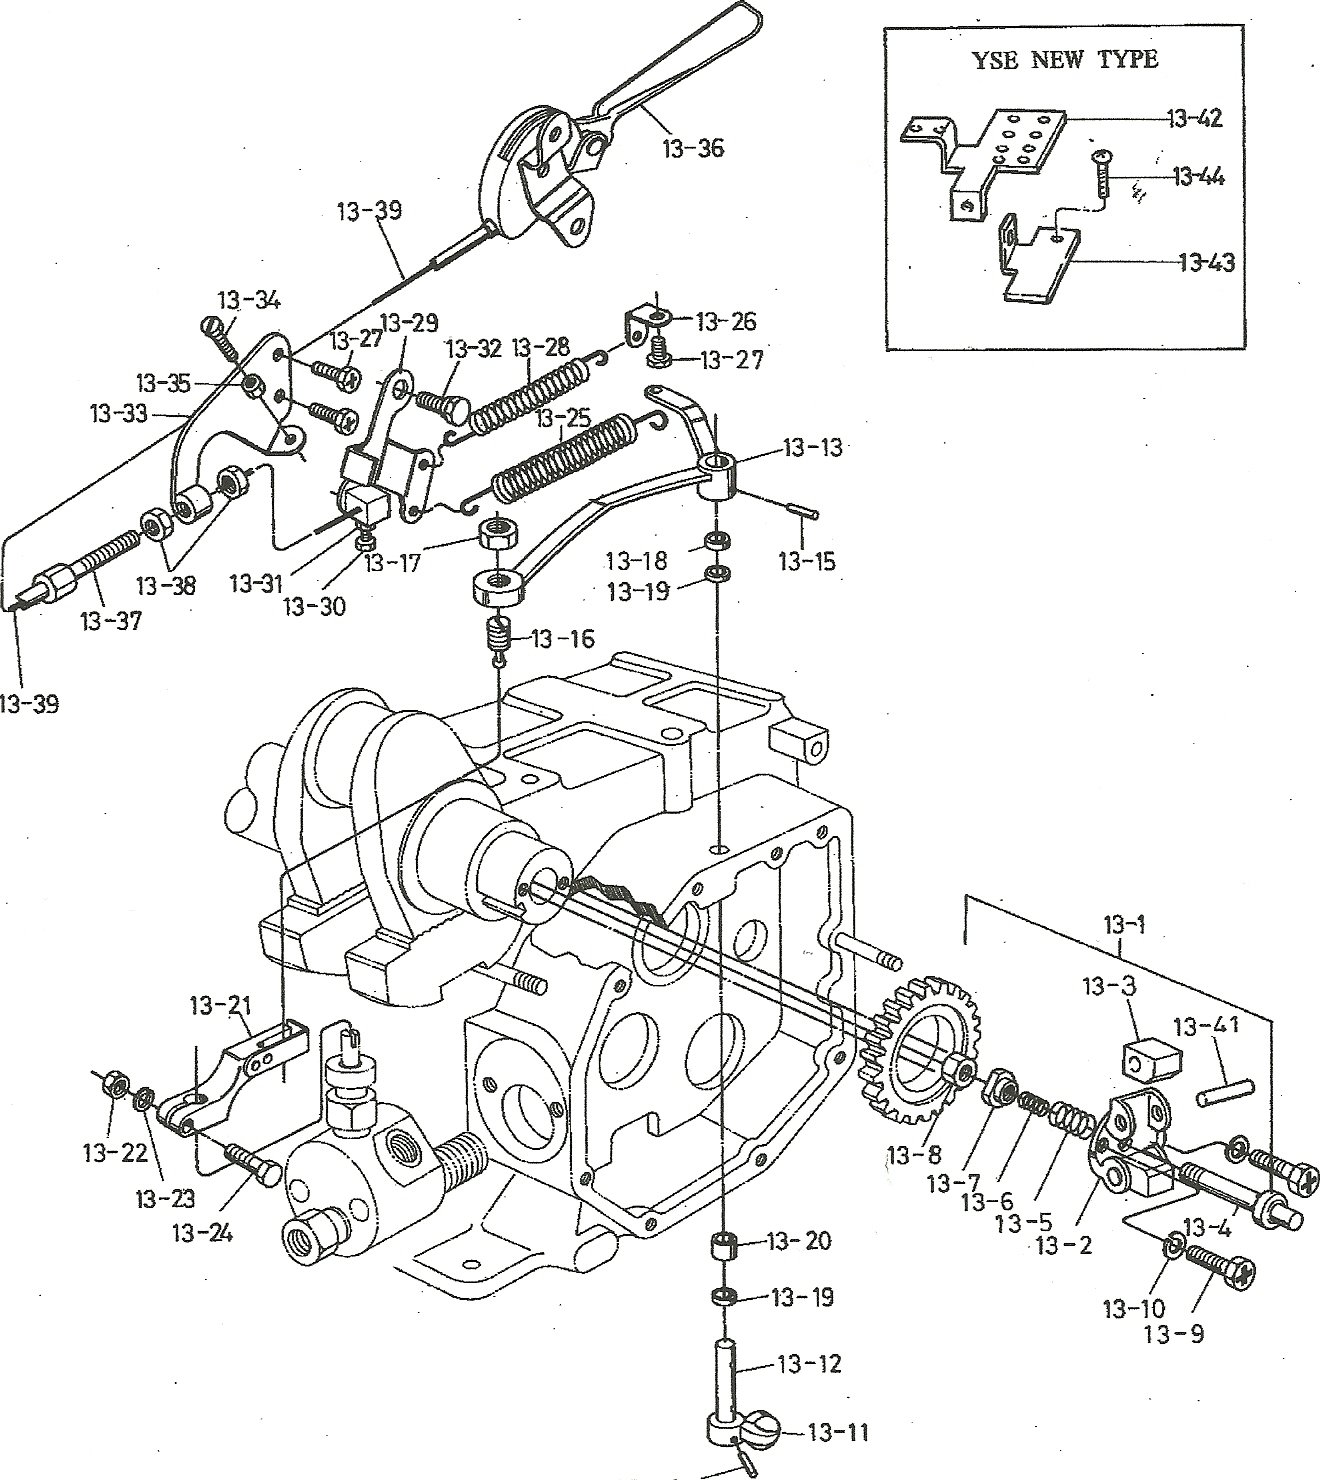 inboard boat engine diagram html